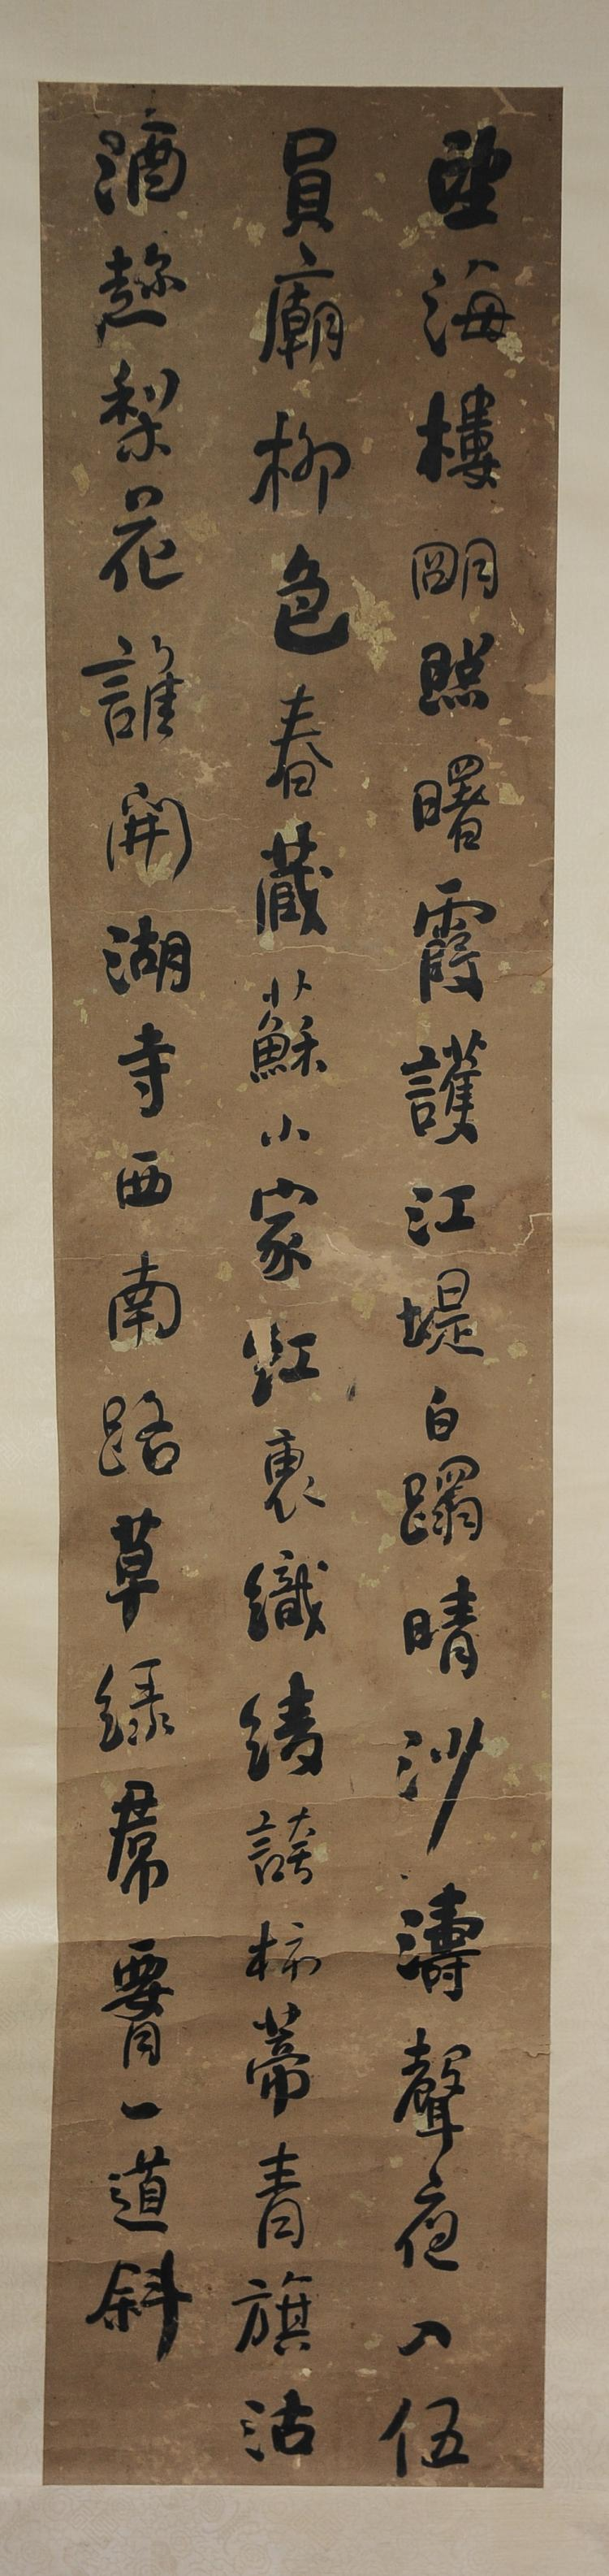 A Calligraphy by Yi Qiao